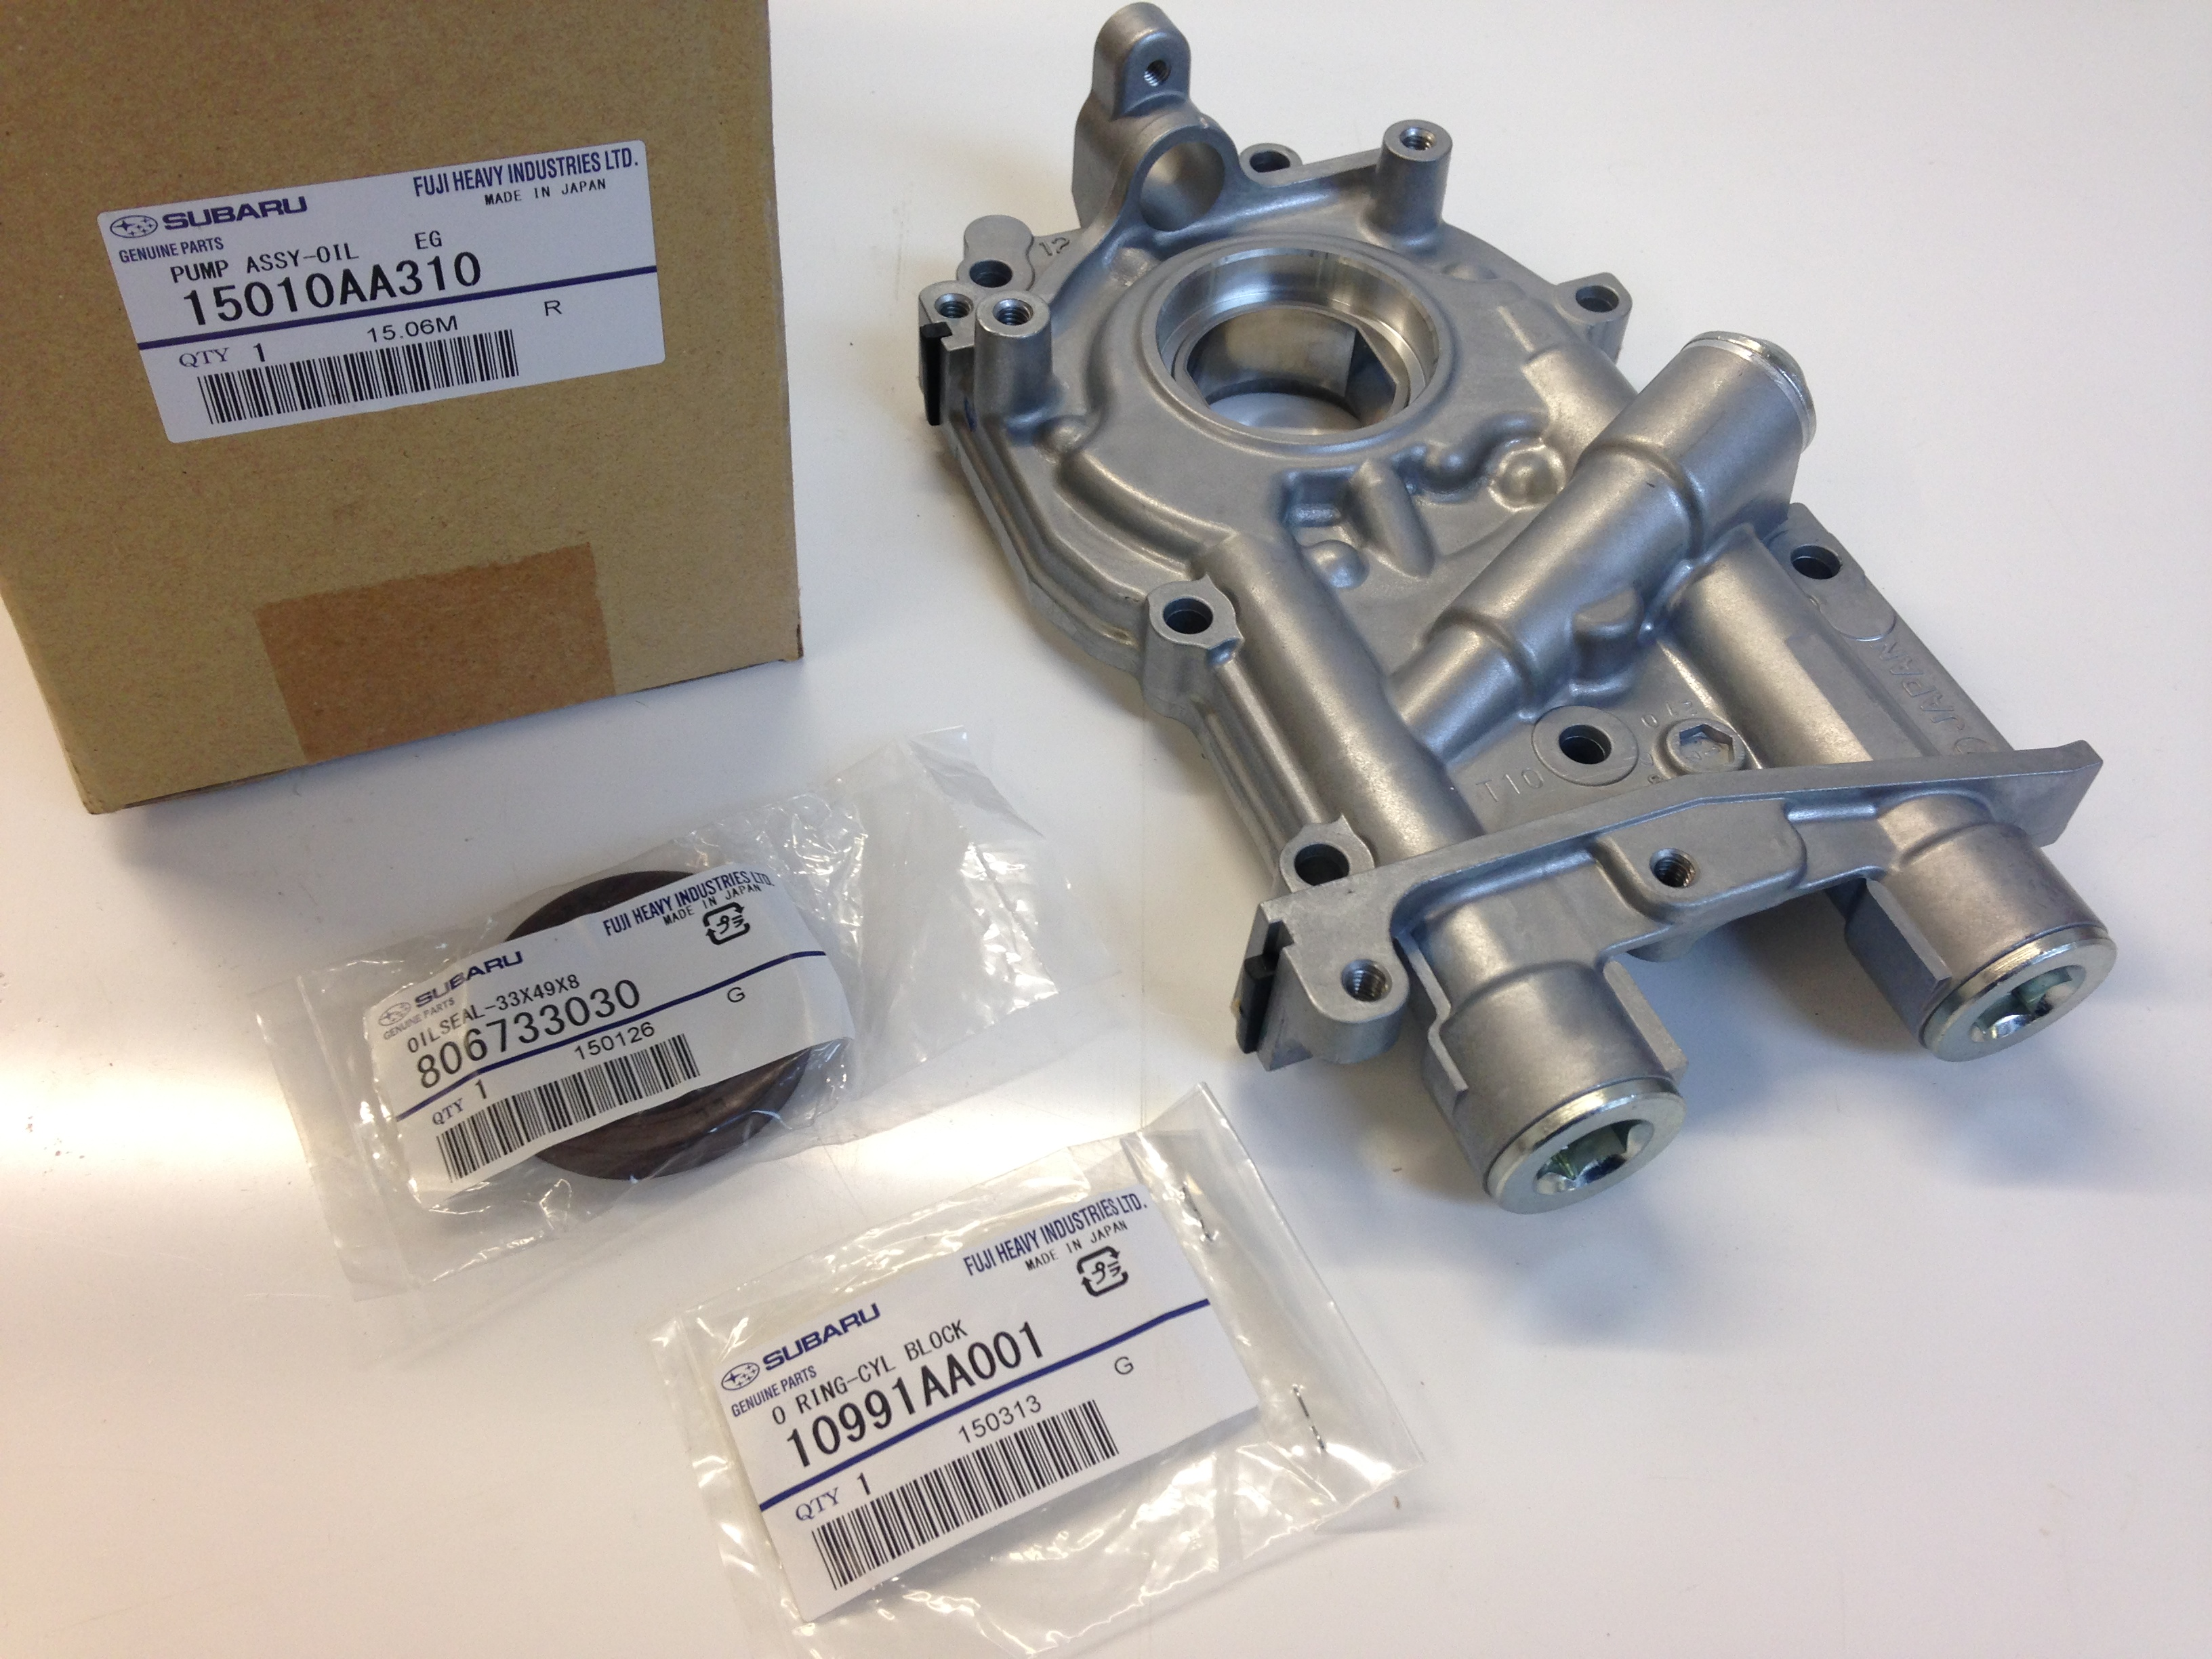 Genuine Subaru parts in stock